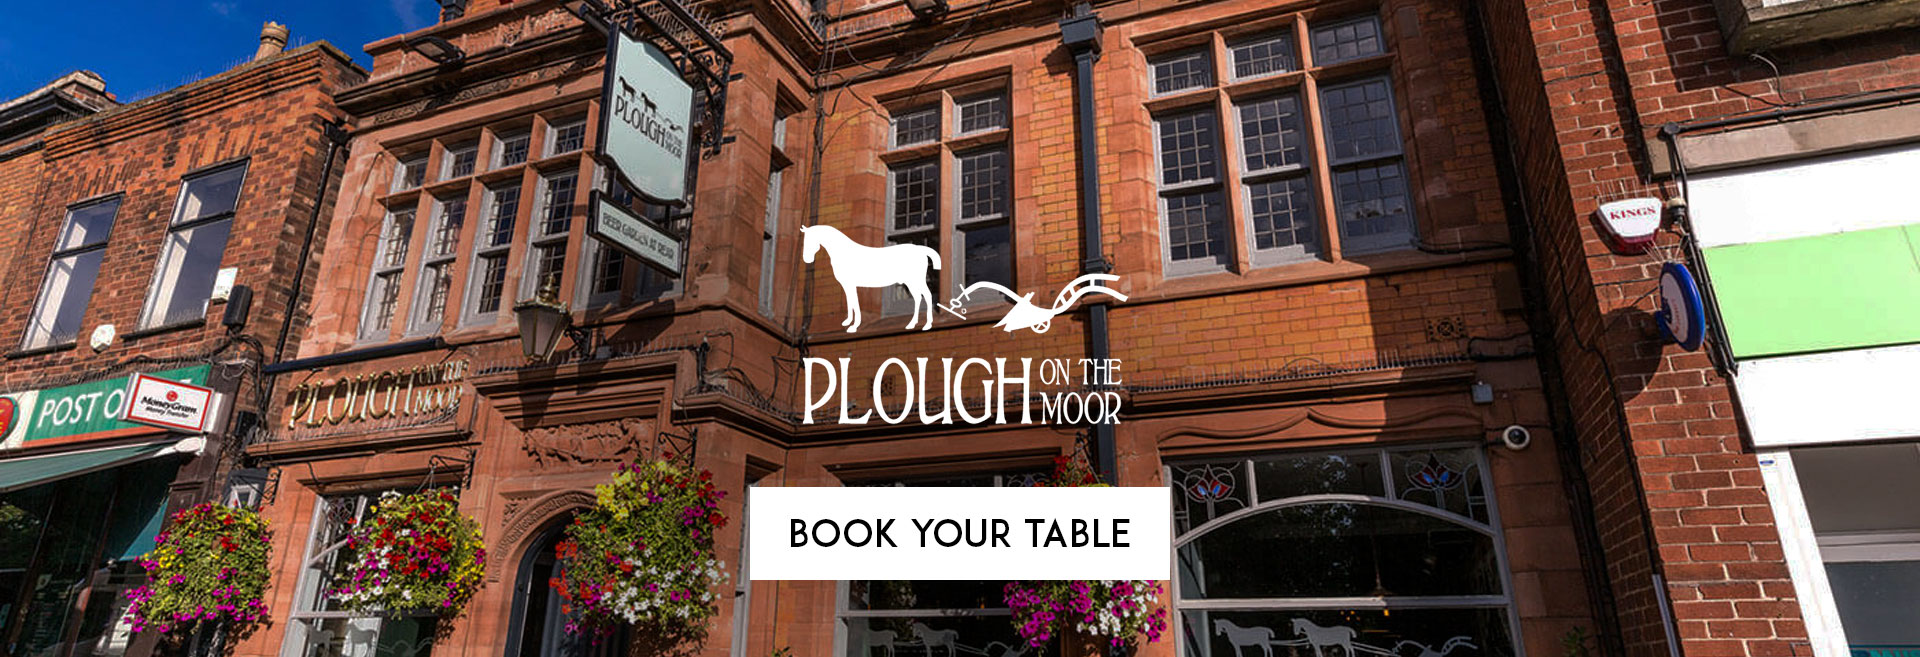 Book Your Table at The Plough on the Moor